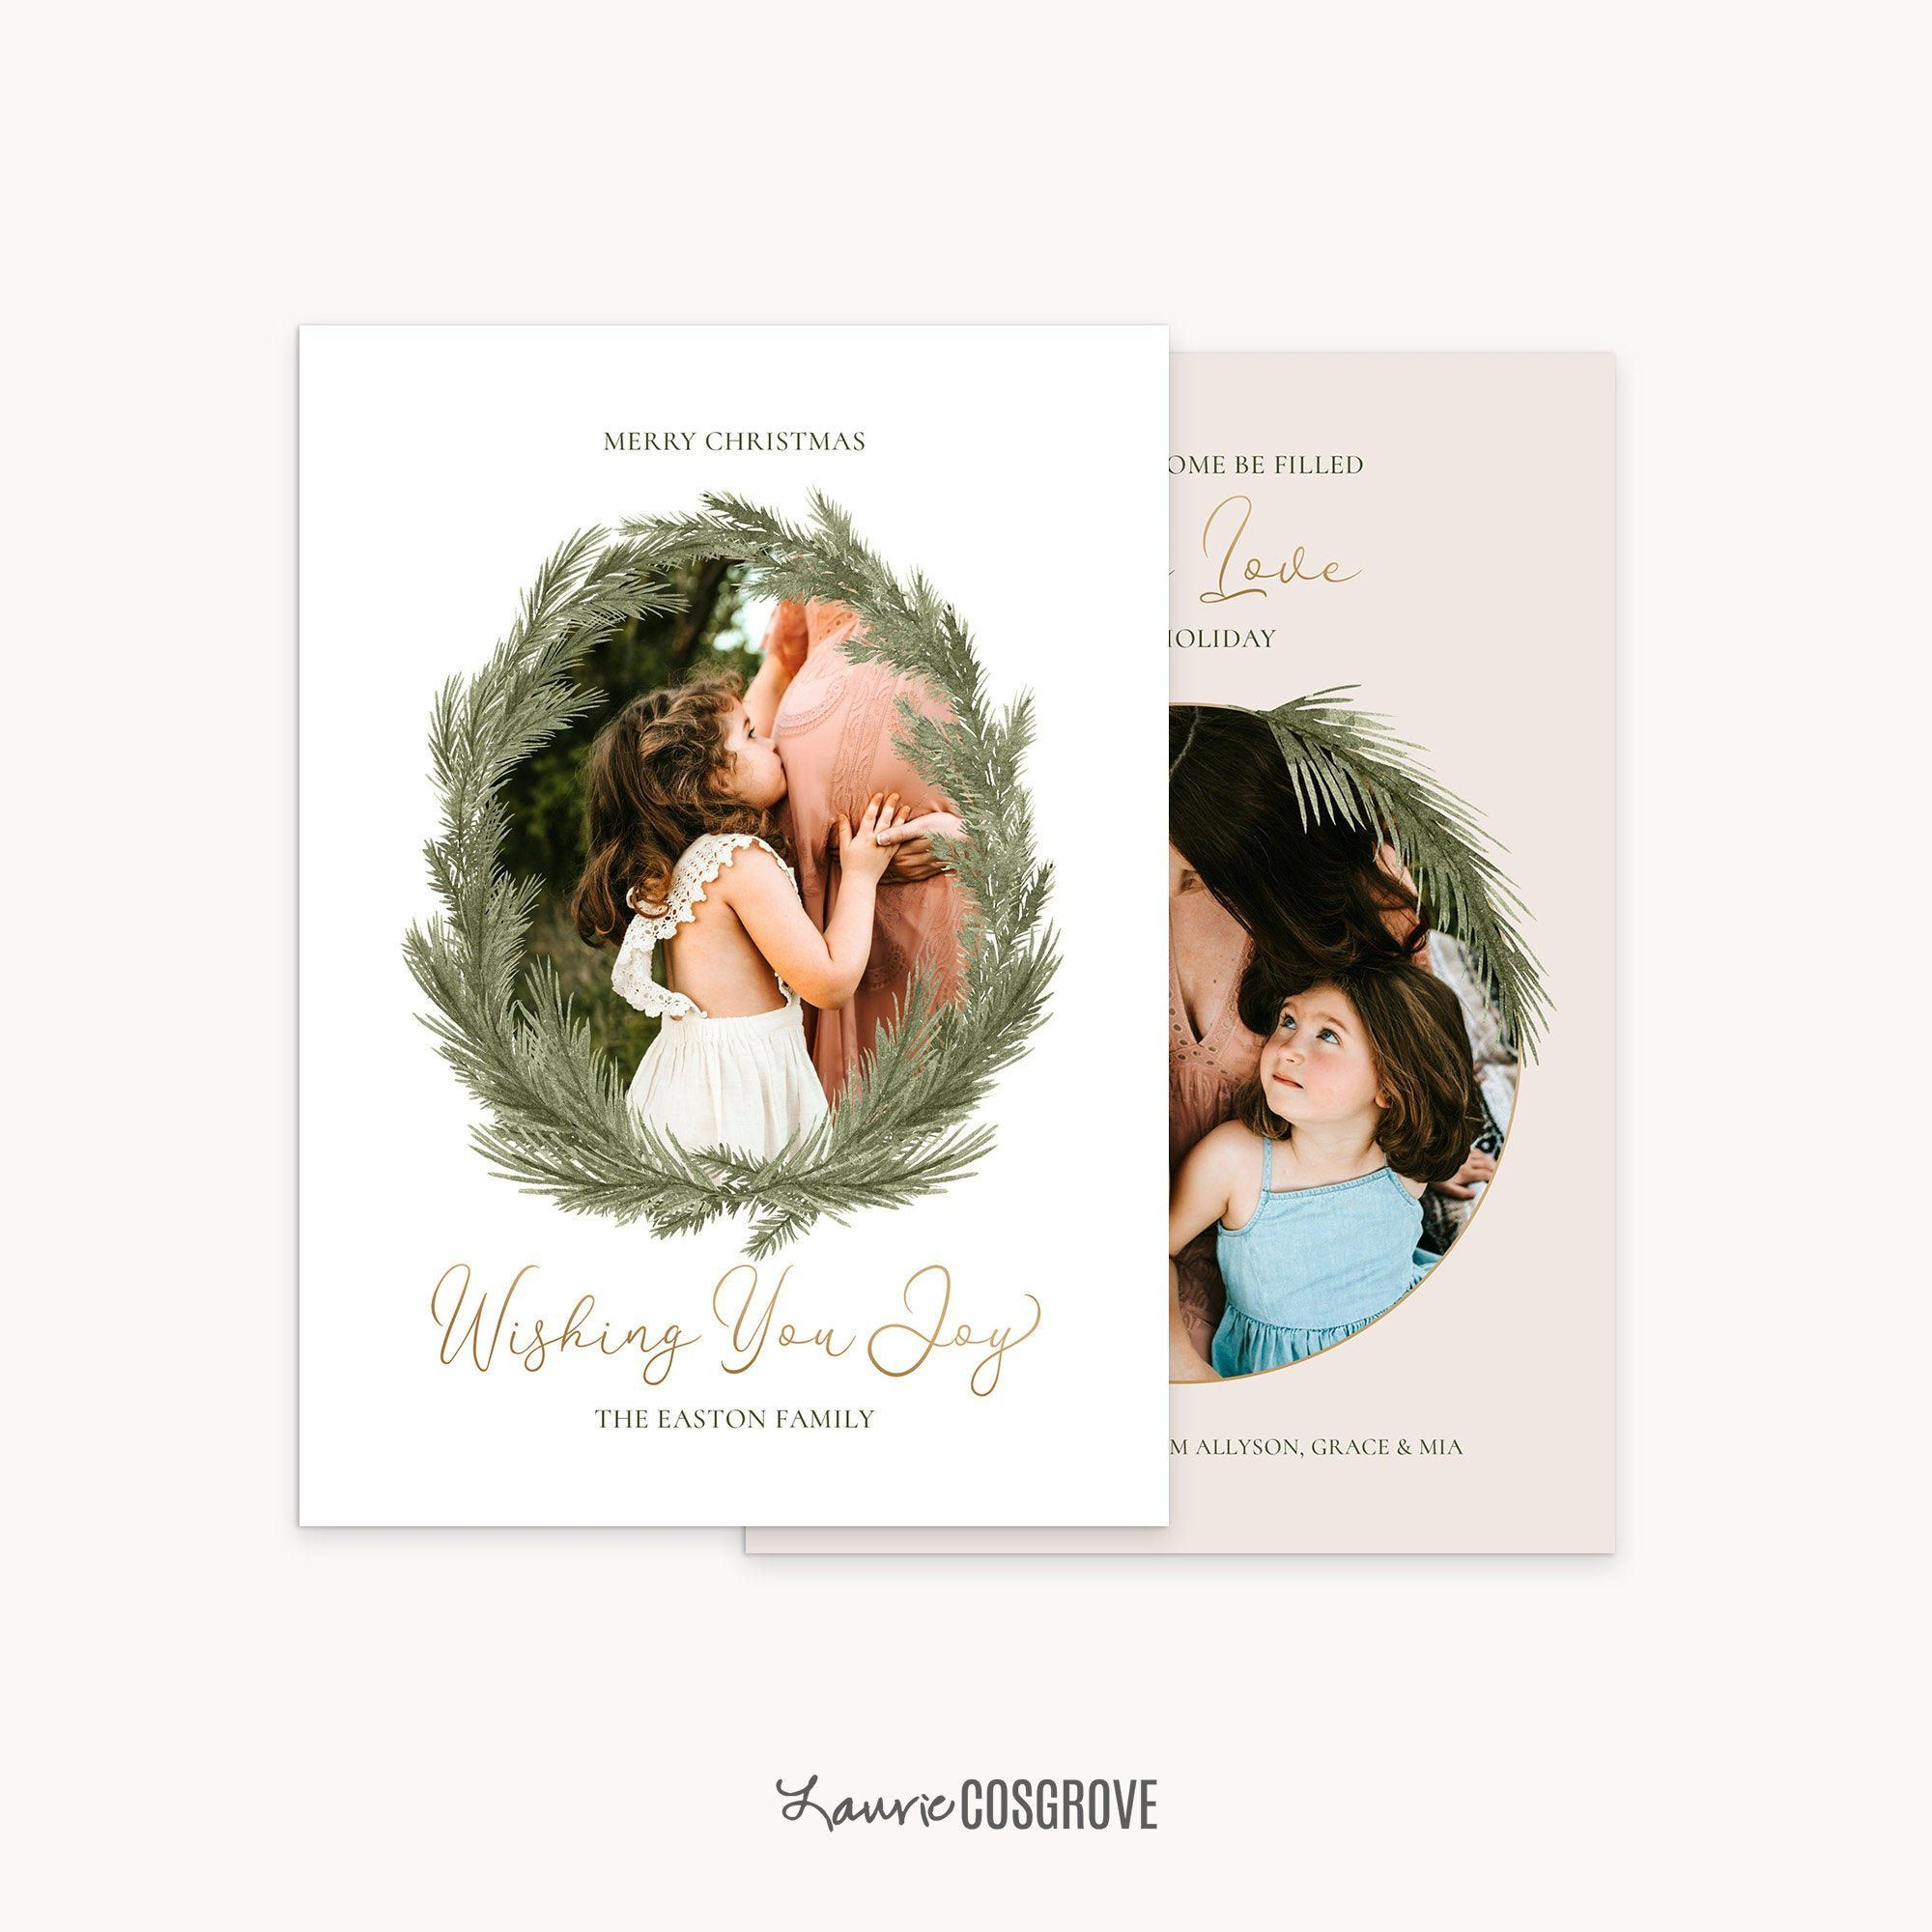 2020 Christmas Card Template 5x7 Holiday Card Template For Etsy Christmas Card Template Holiday Card Template Elegant Holiday Cards